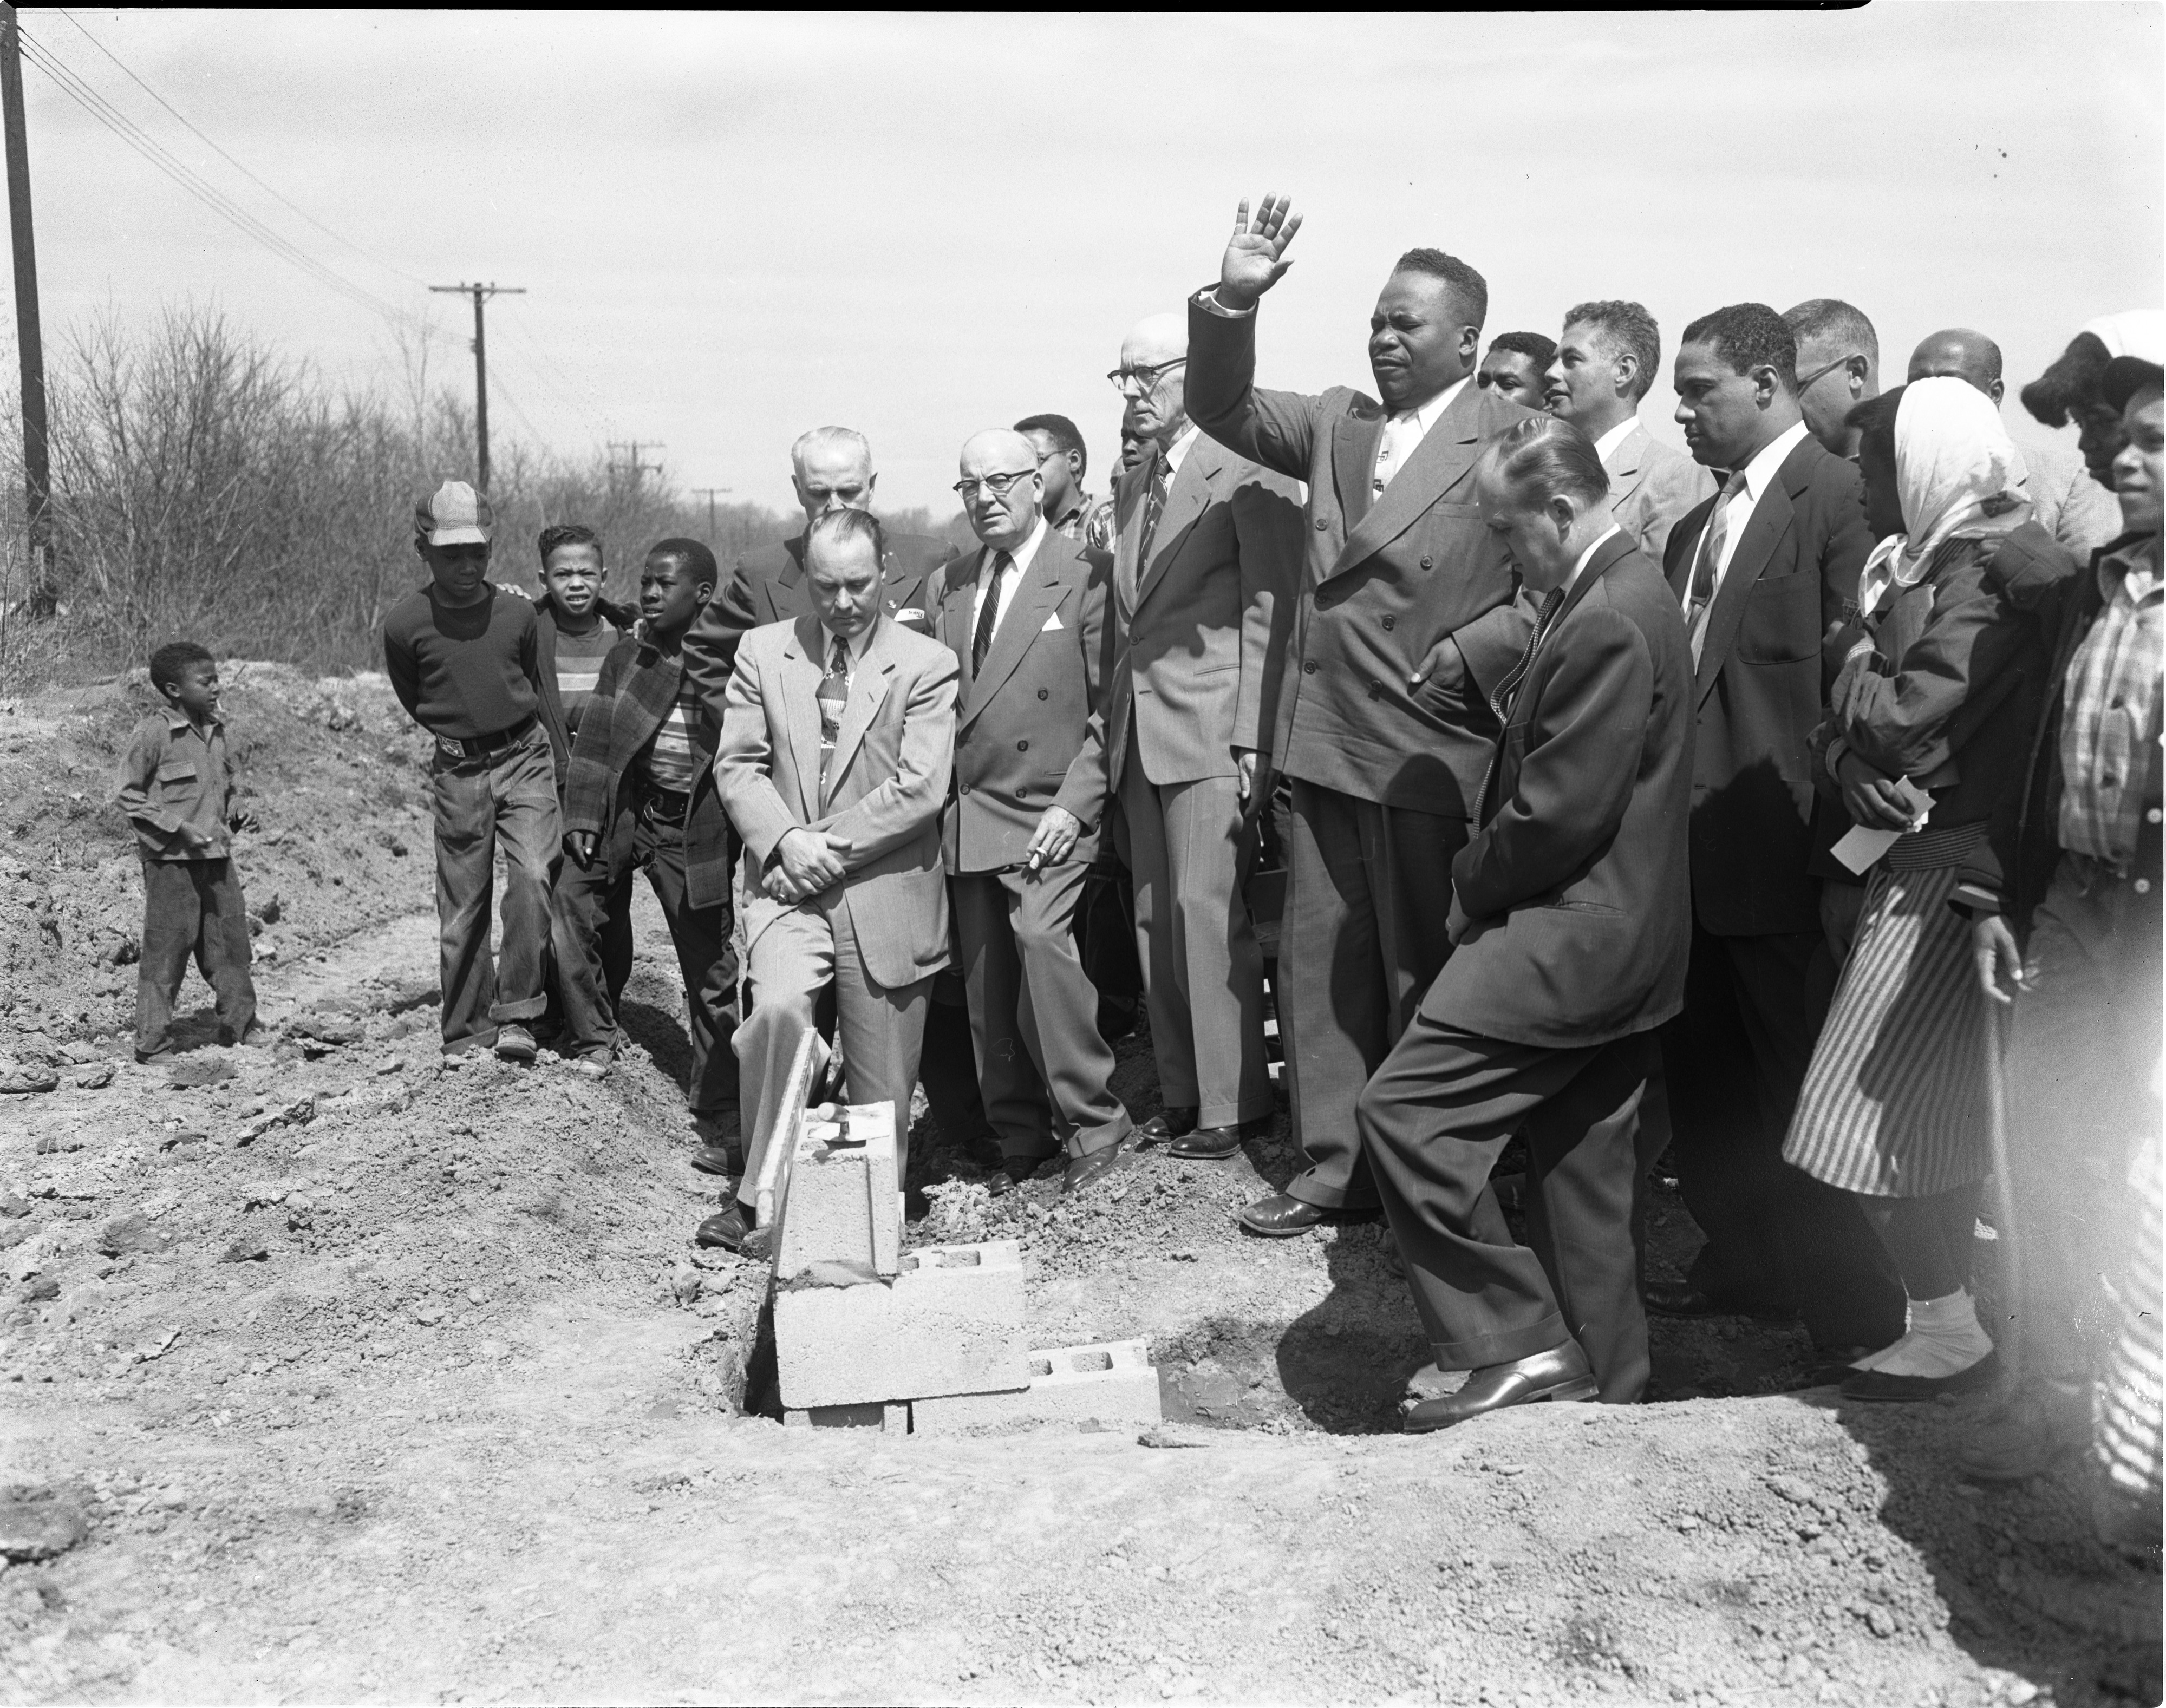 Group Gather To Commemorate The Construction Of The Amos Washington Subdivision, April 1954 image